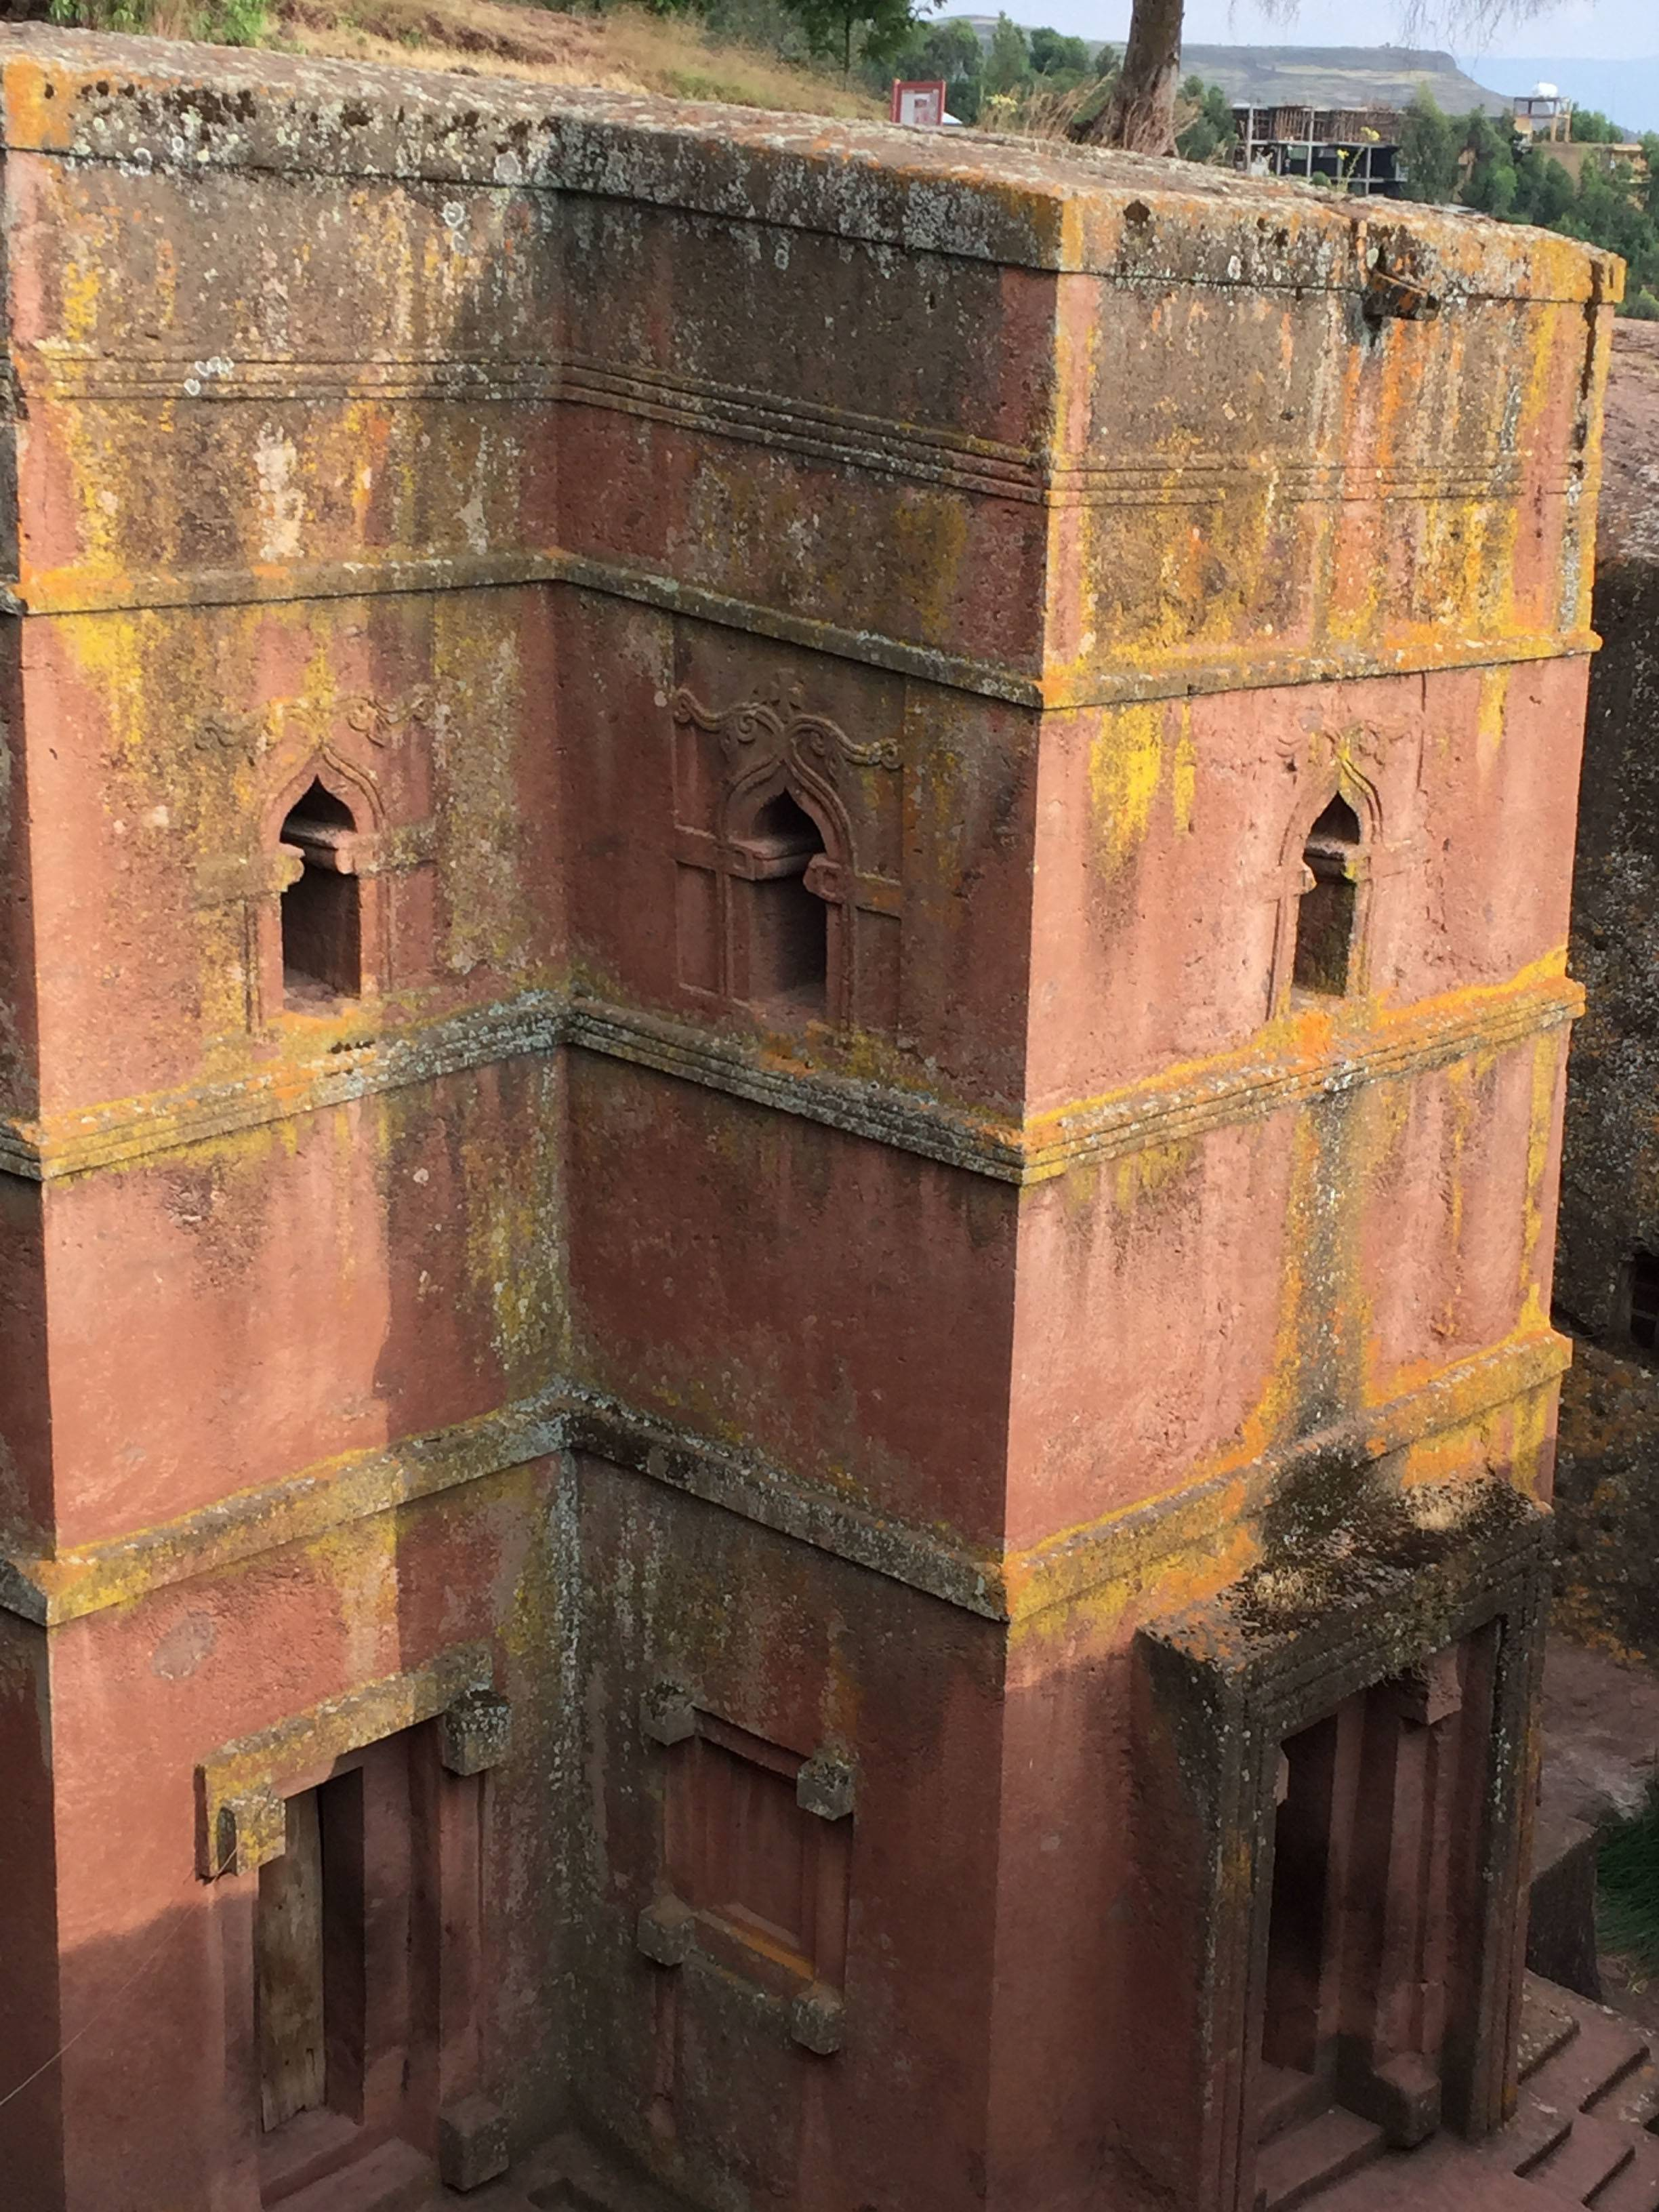 One of the 12th-century churches carved from stone in Lalibela, Ethiopia. The architectural marvels are one of the country's most magical attractions, miracles of engineering built 8,000 feet above sea level, each carved in one piece directly from soft volcanic rock.